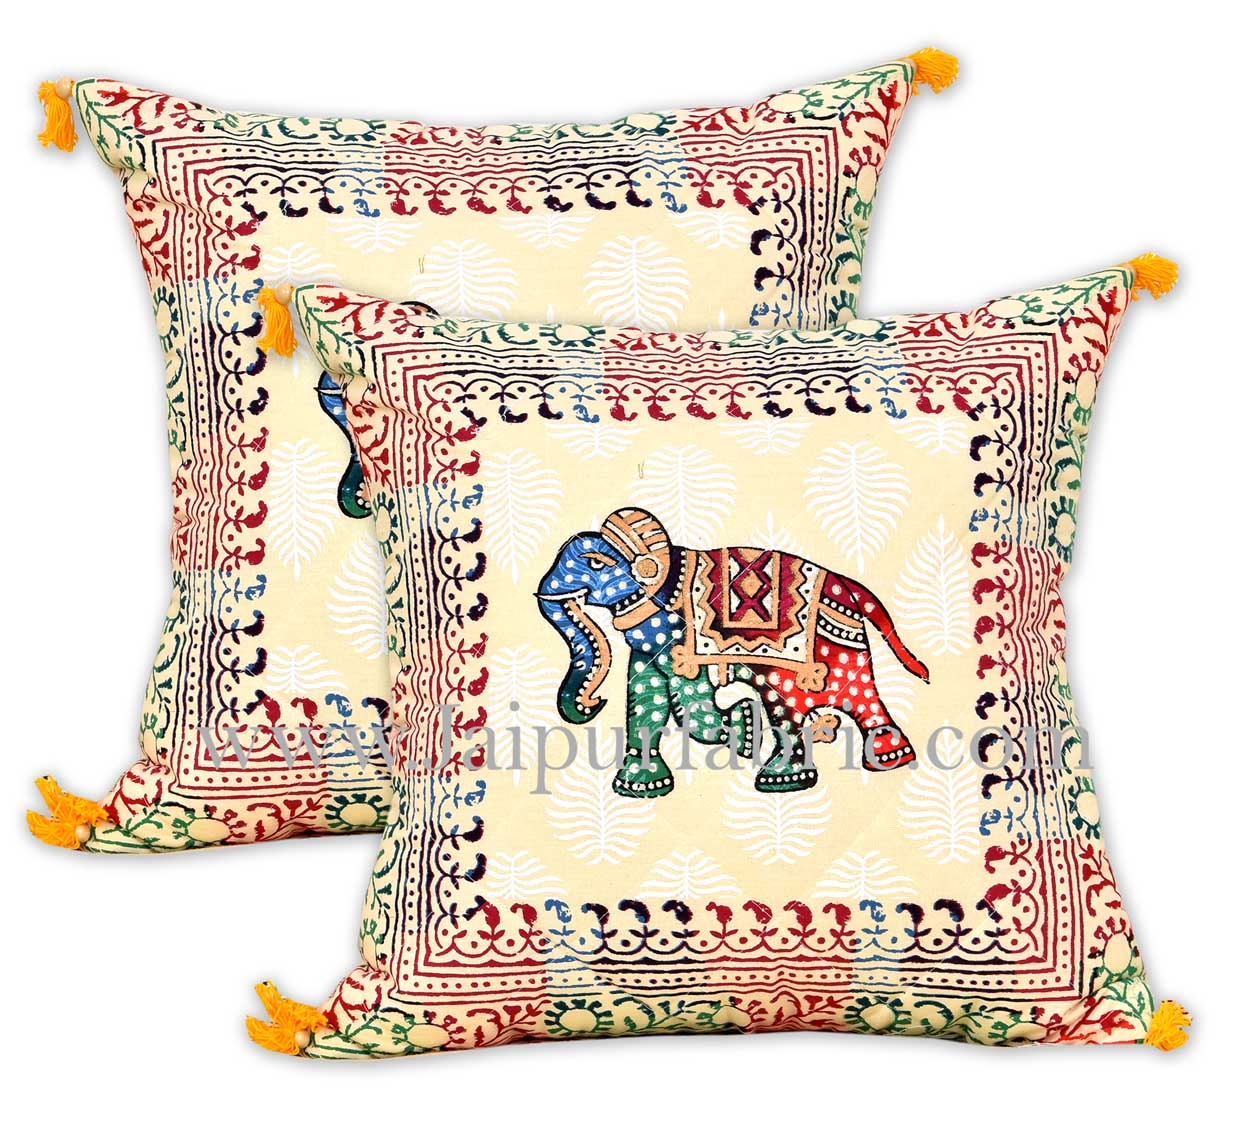 Satrangi elephants in sparkling sand diwan set